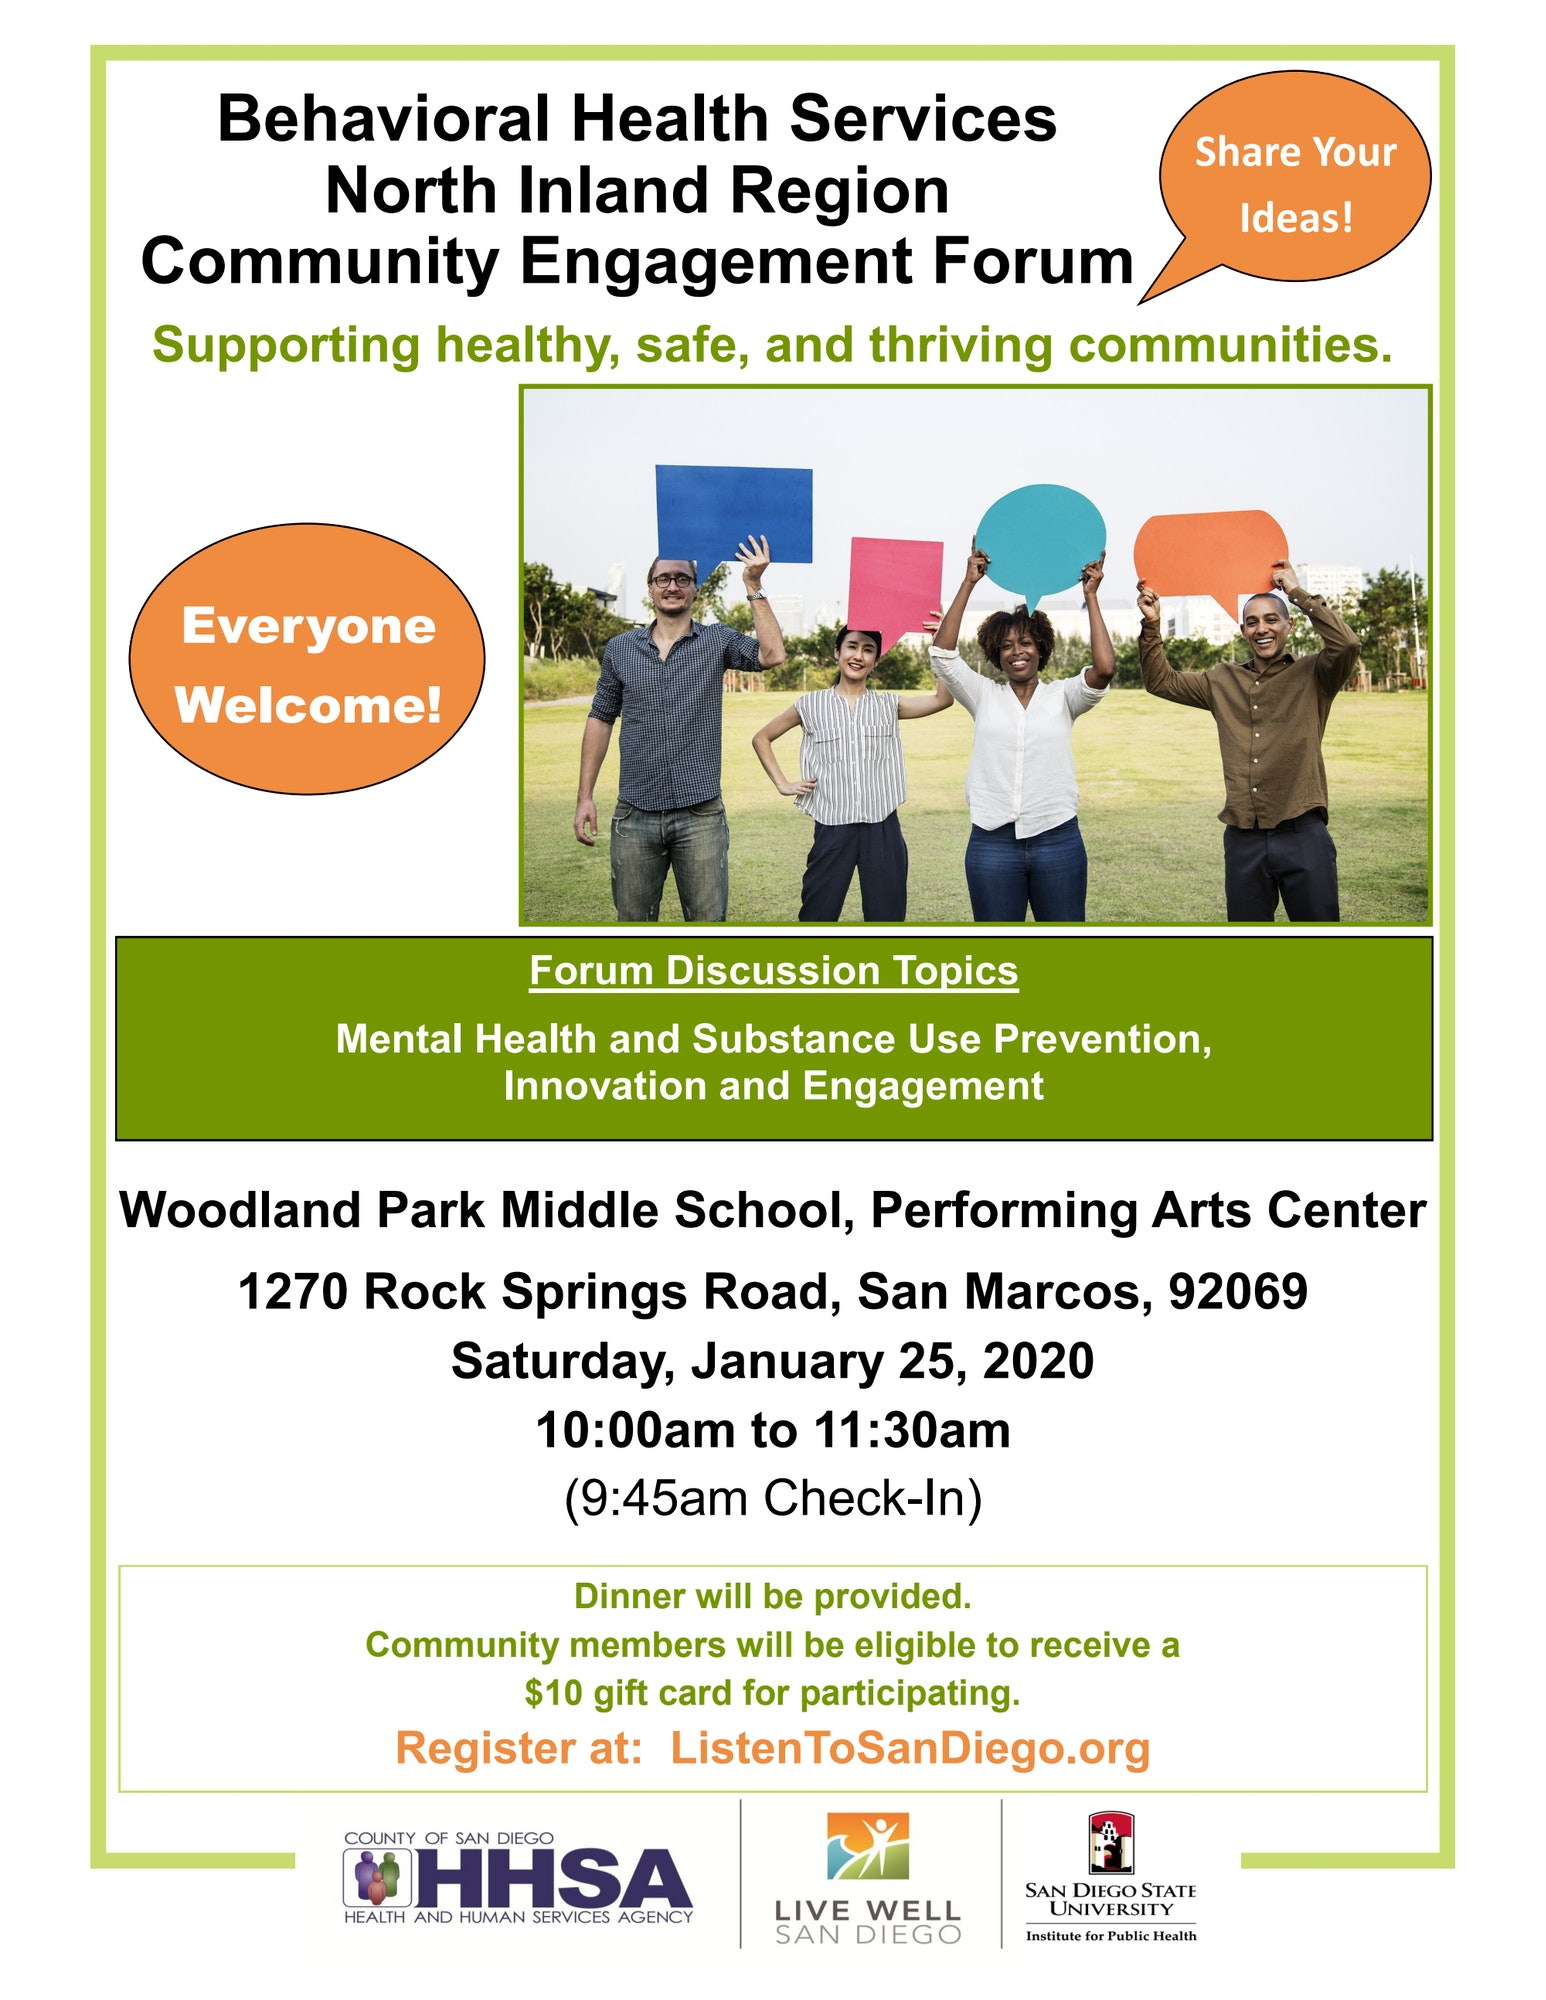 Announcement of a Behavioral Health Community Engagement Forum on Saturday, January 25th, 2020, 10am-11:30am. 9:45 am check. Breakfast will be served. Register at ListentoSanDiego.org